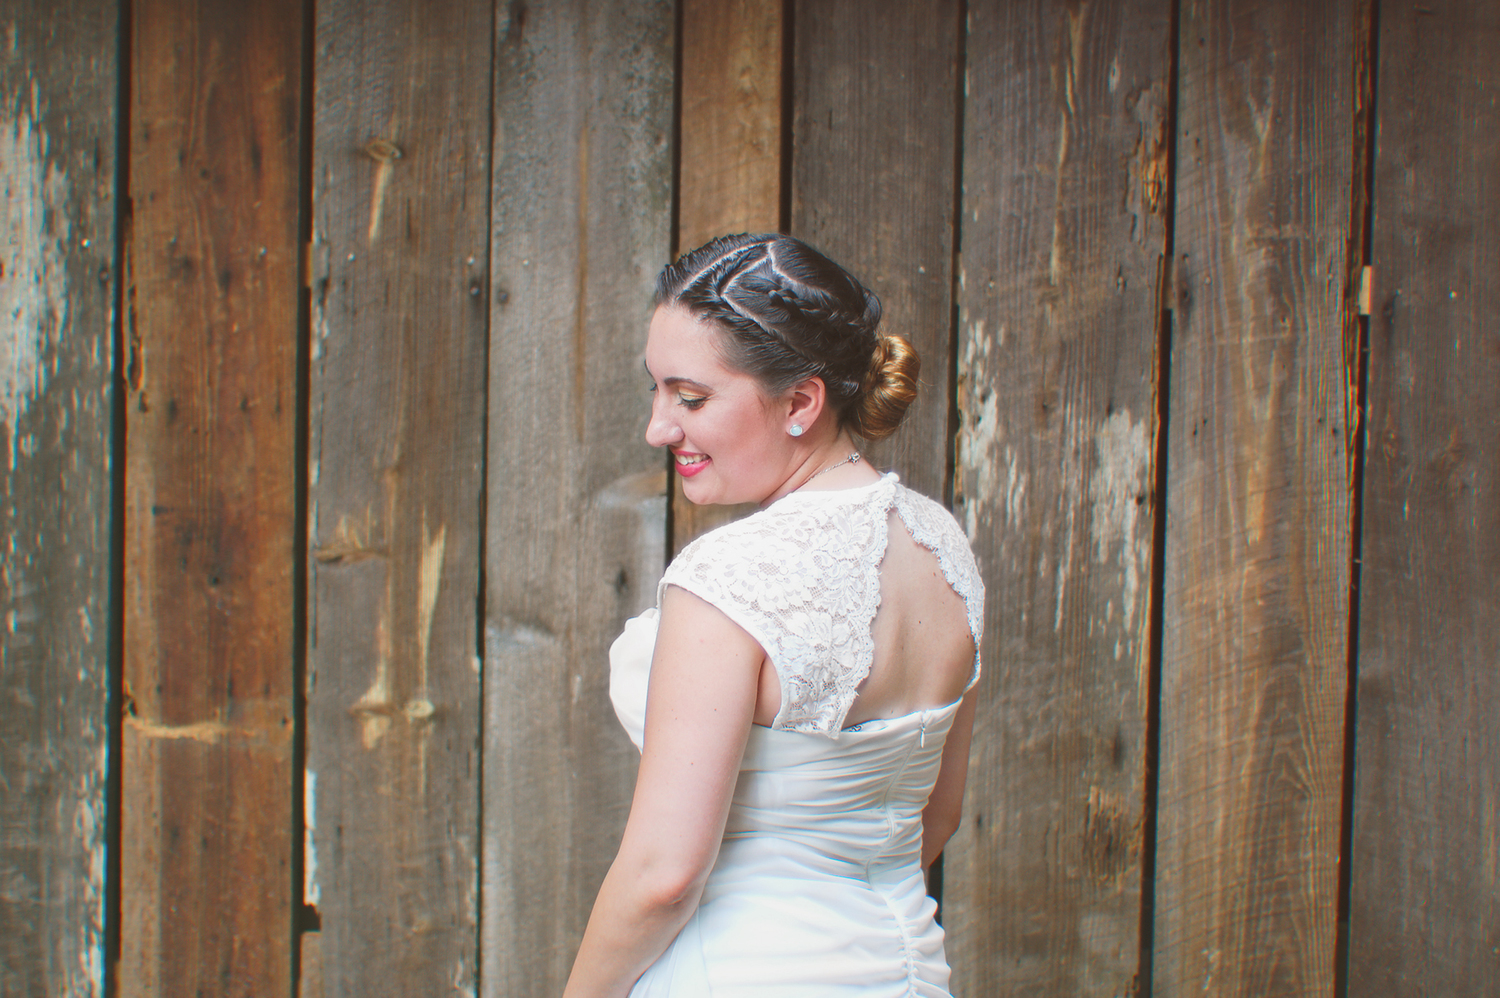 Another photo of my sister from her wedding this summer.